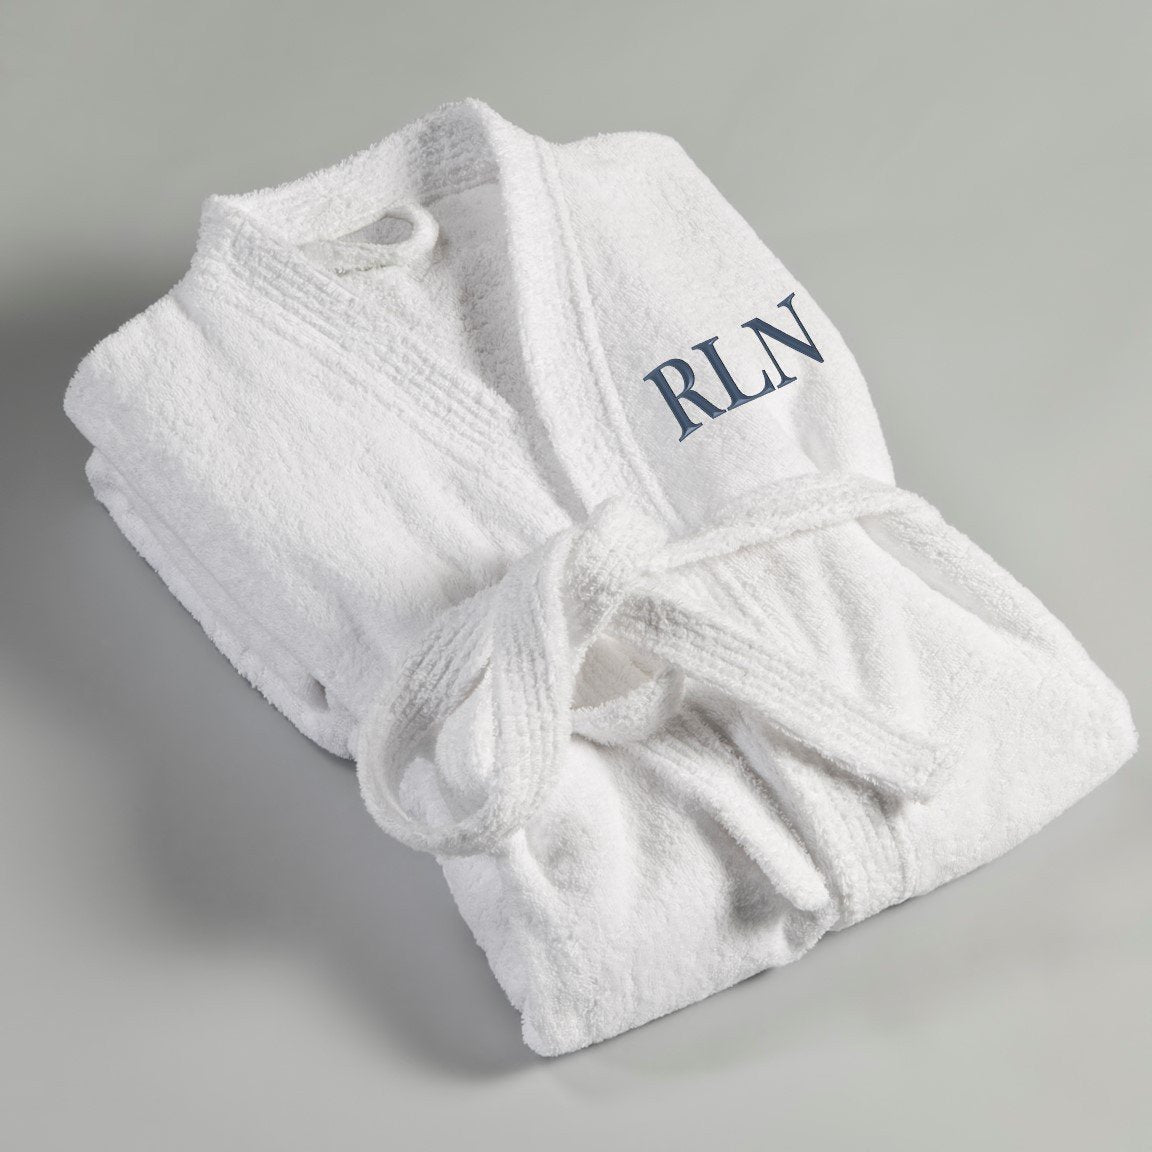 Personalized-Embroidered-Mens-Bath-Robe